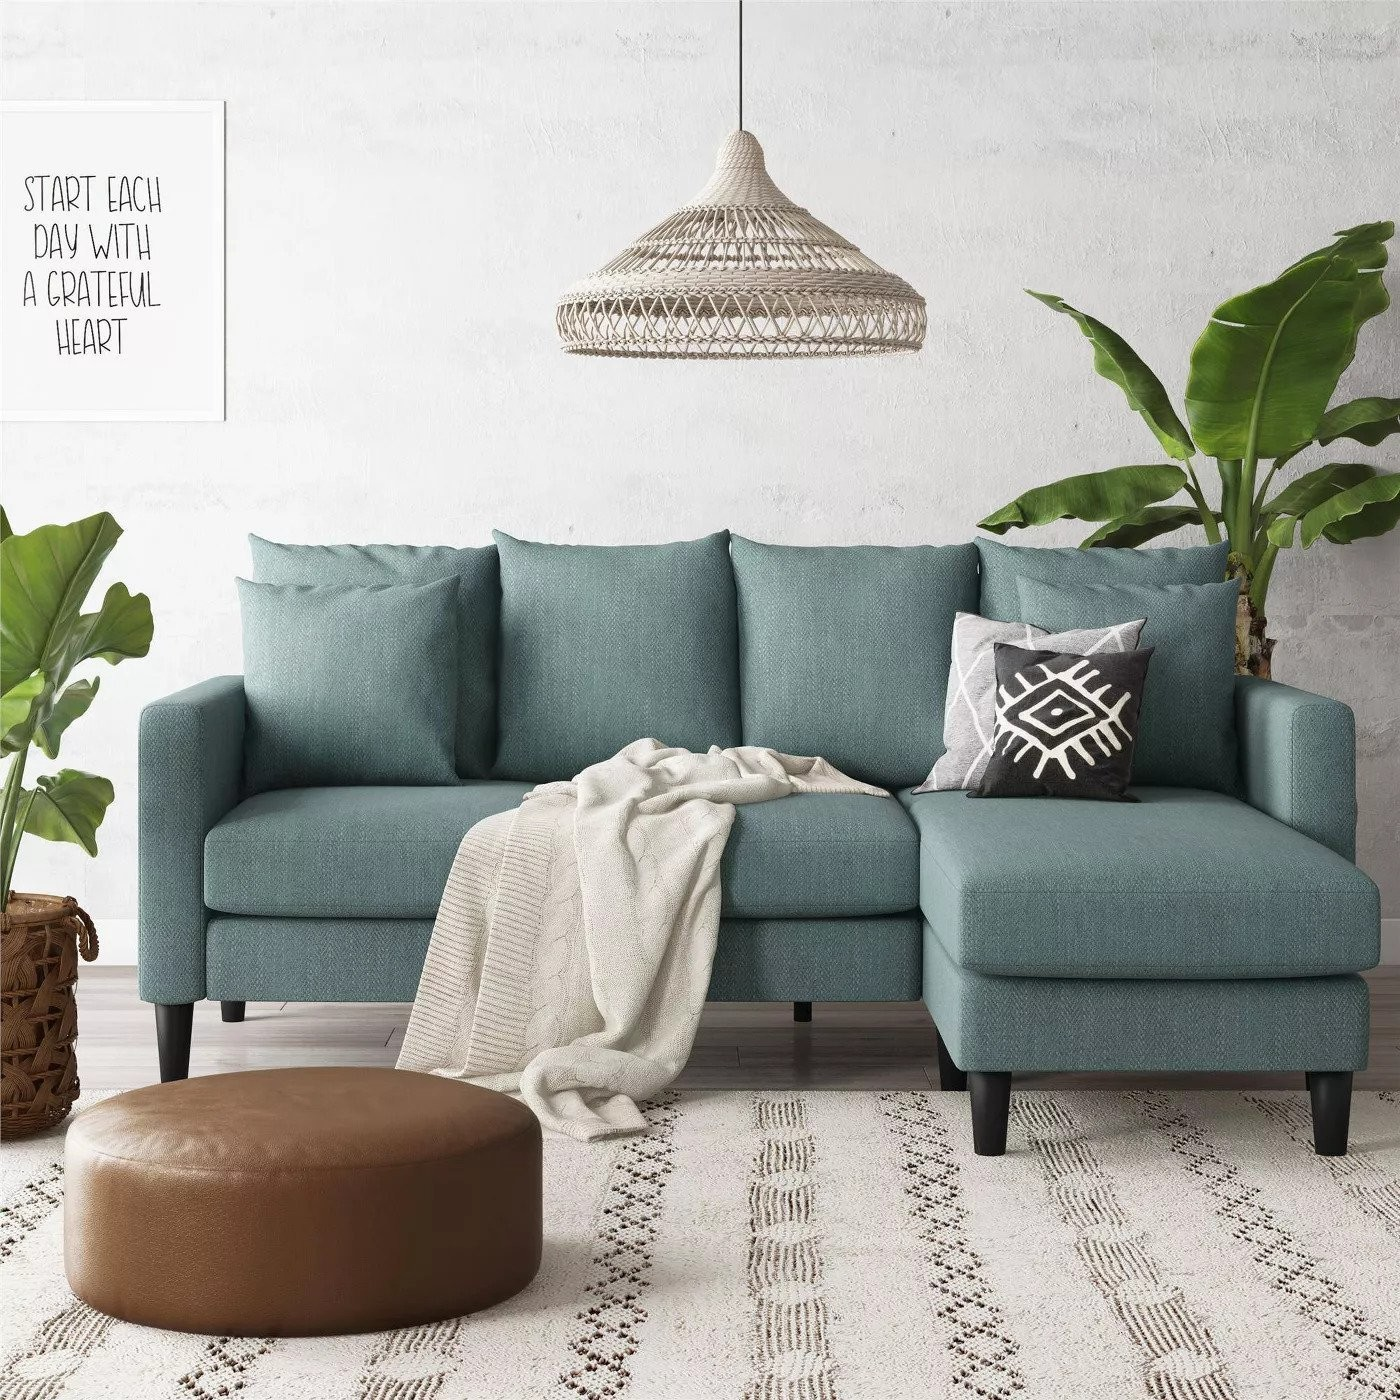 The Best Couches To Buy In 2021   Sofas And Couches   Lonny